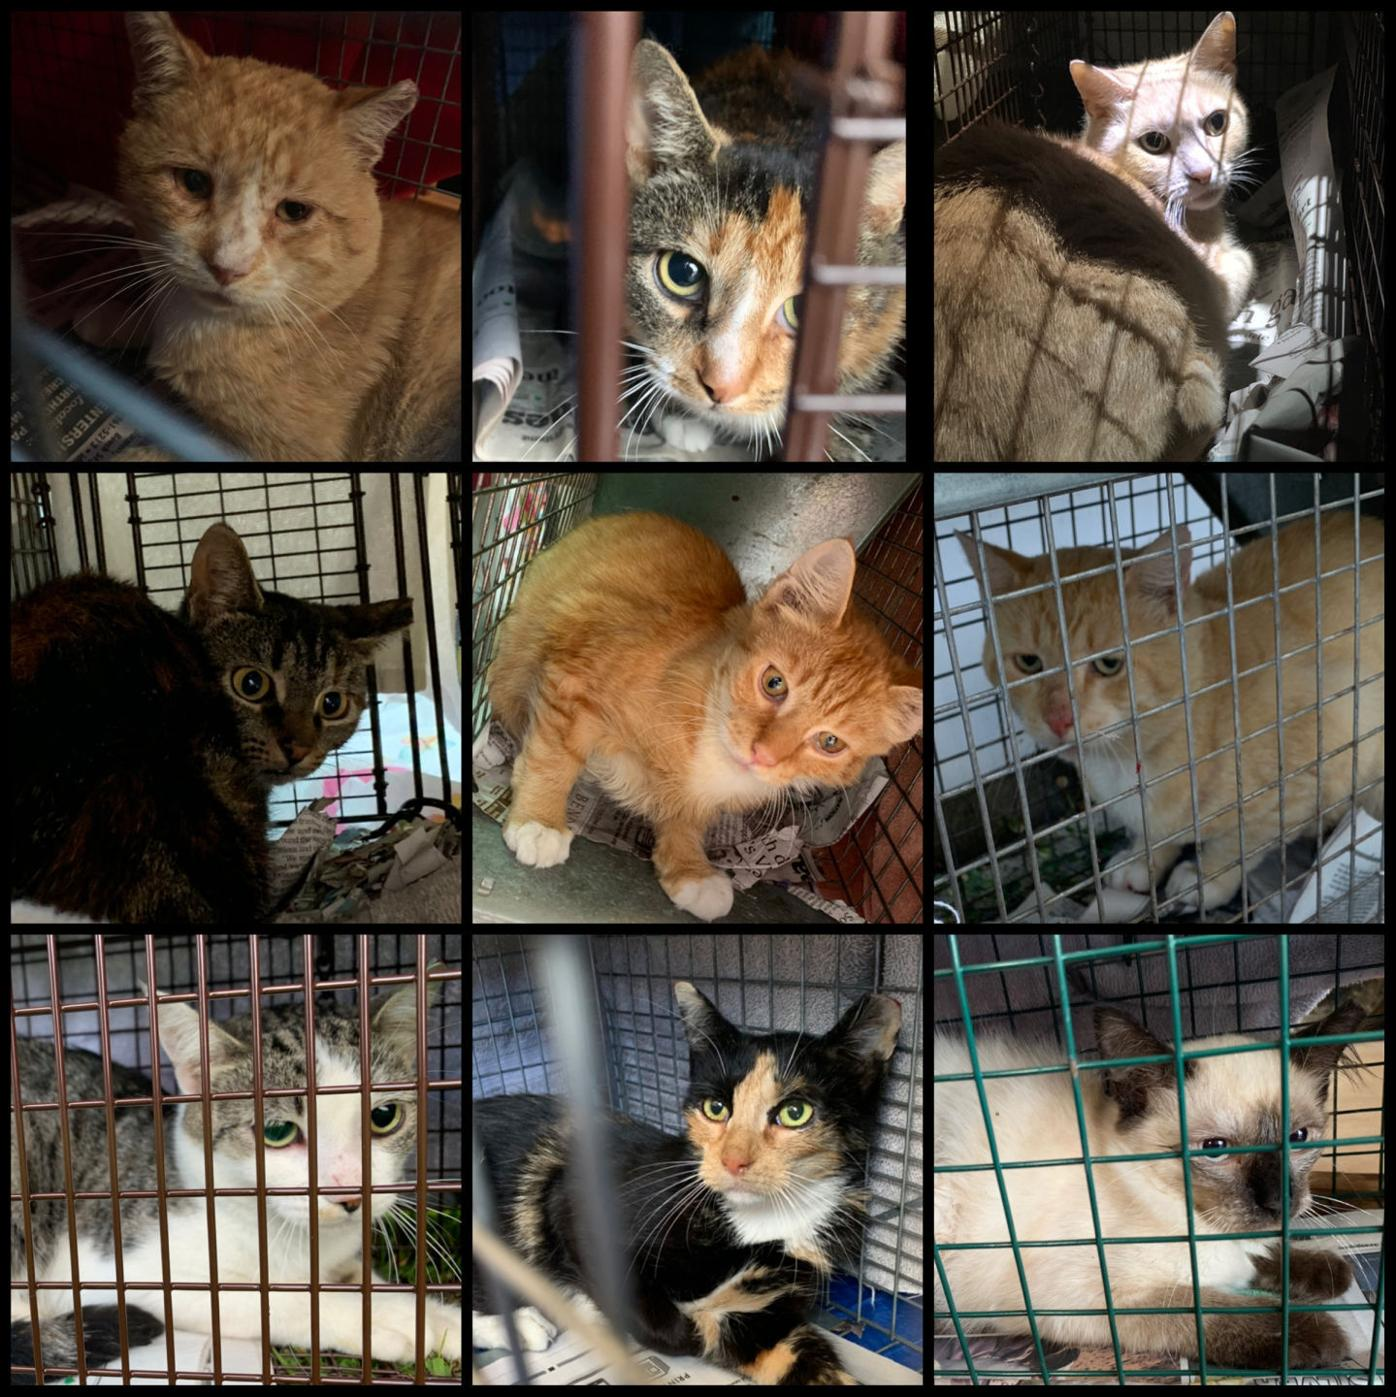 Animal lovers get financial boost to help cats in Jessup